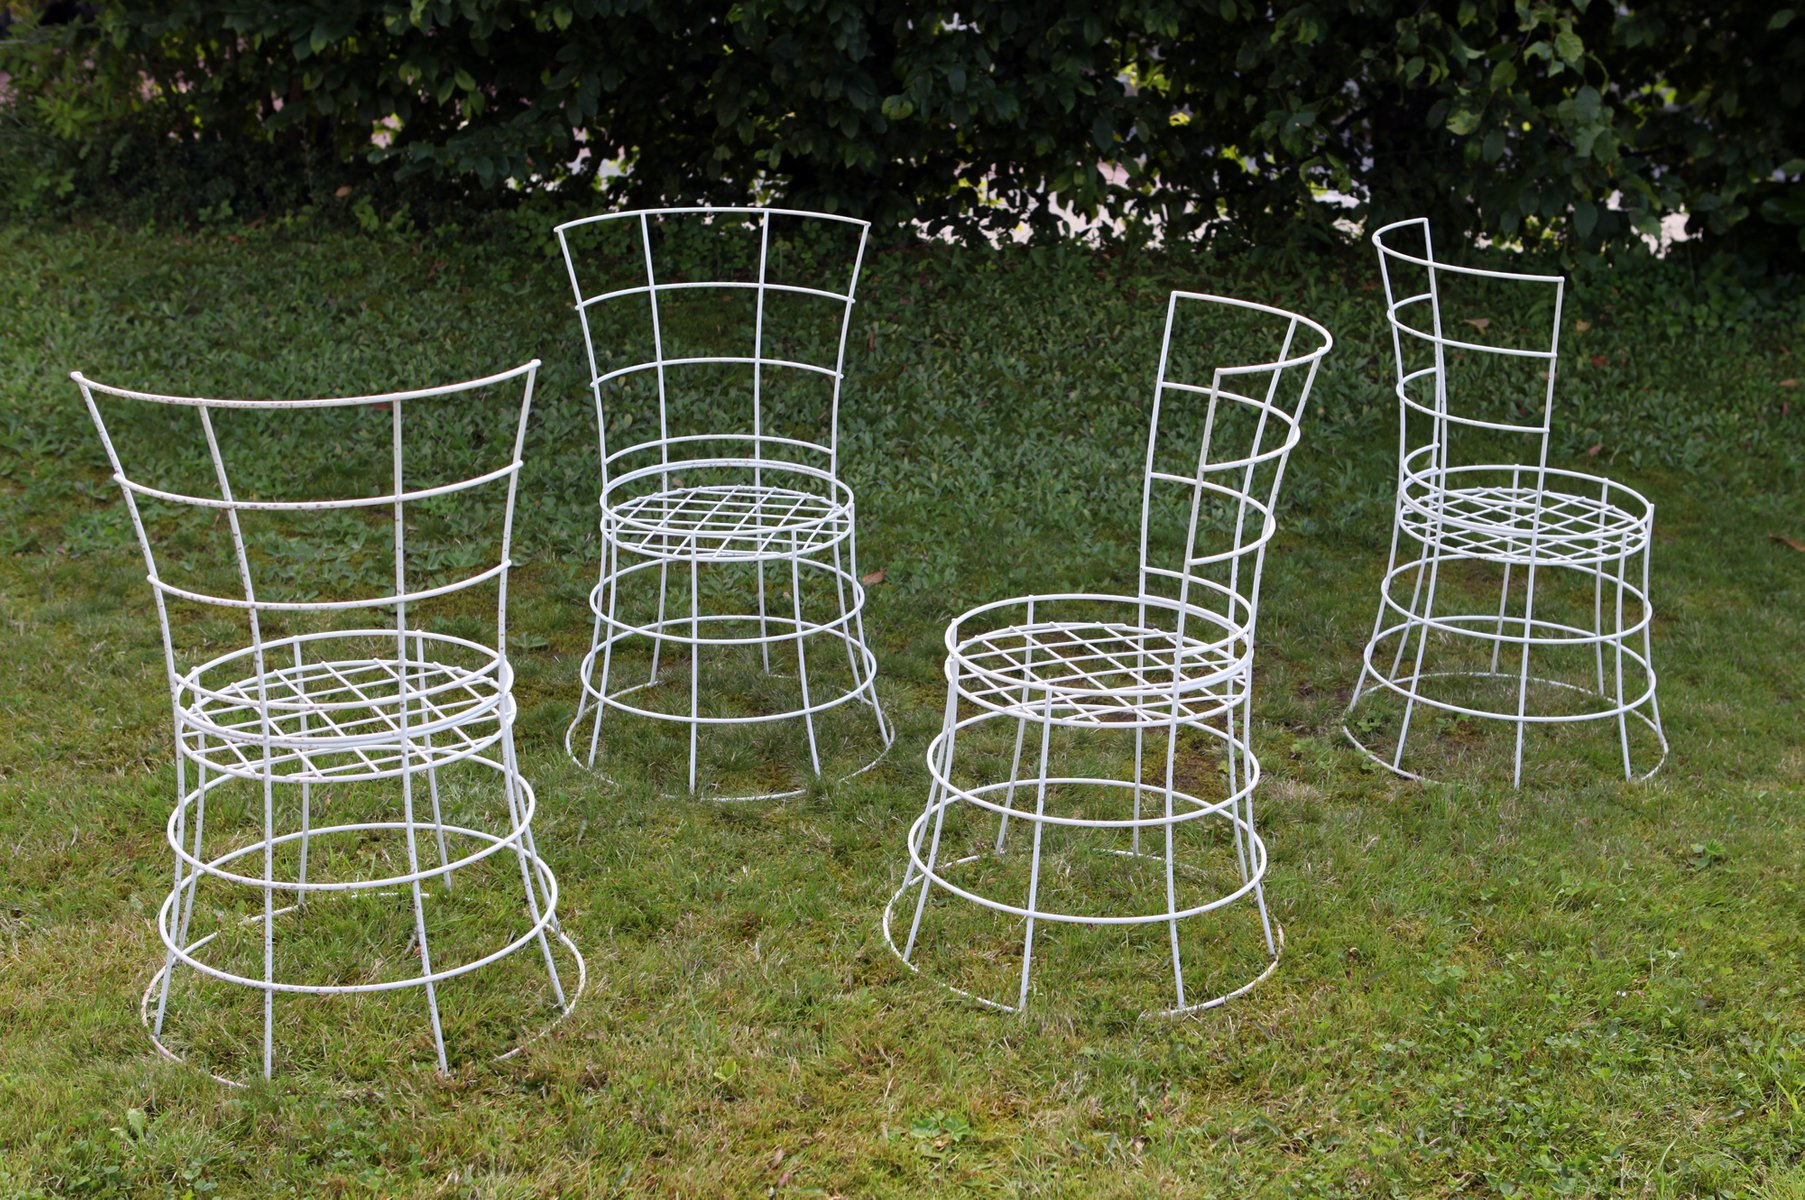 ... Mid Century French Wire Garden Chairs, Set Of 4 For Sale At Pamono  French Wire